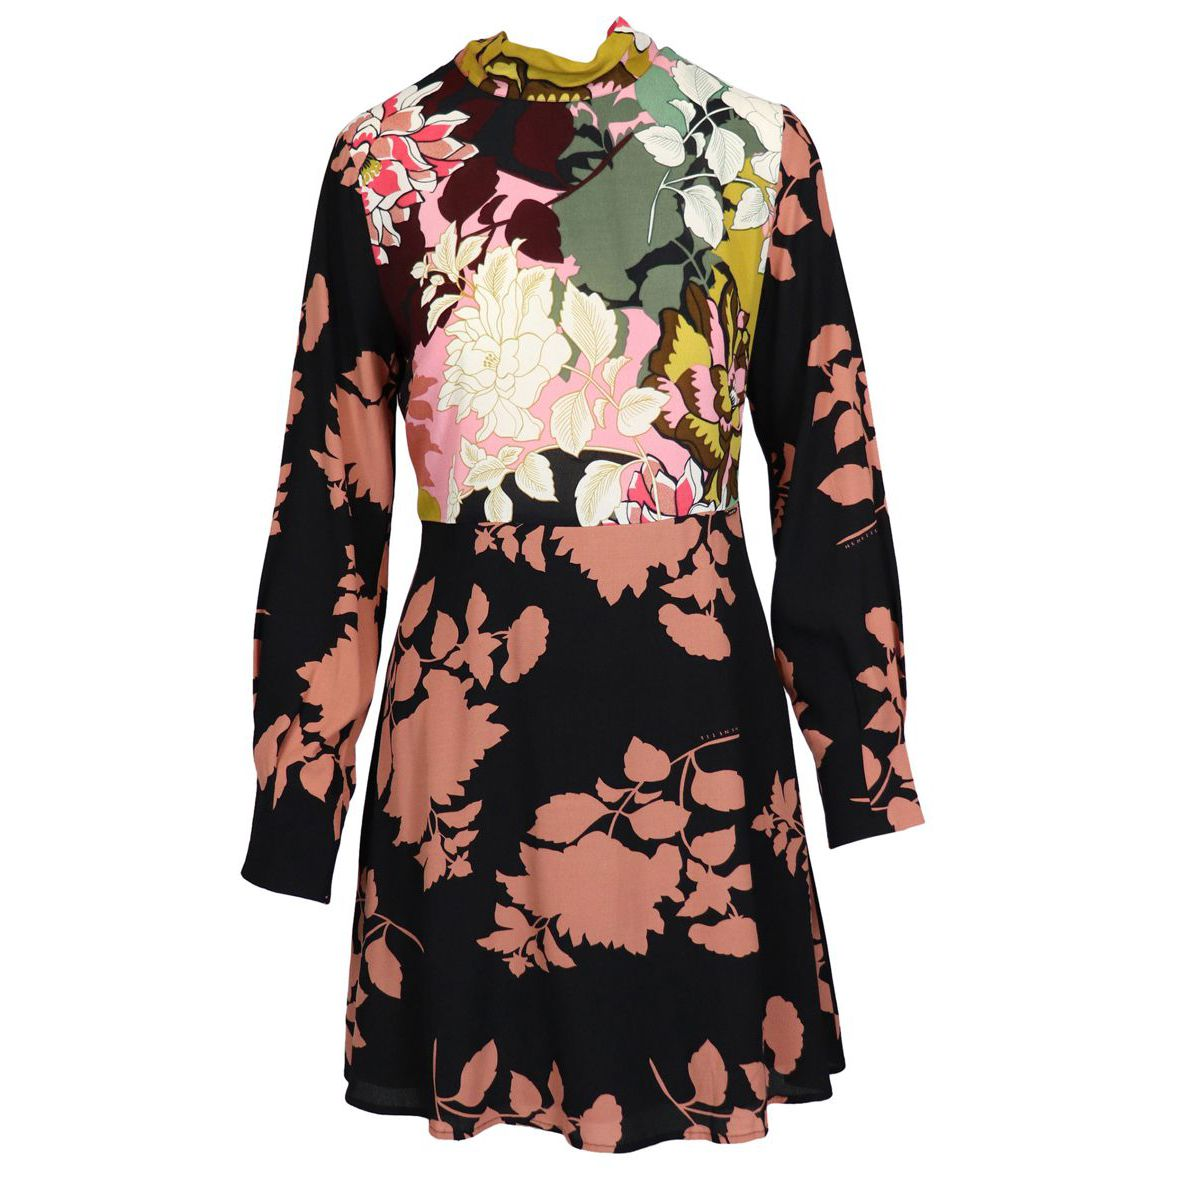 Abele viscose dress with floral print Black / pink Nenette